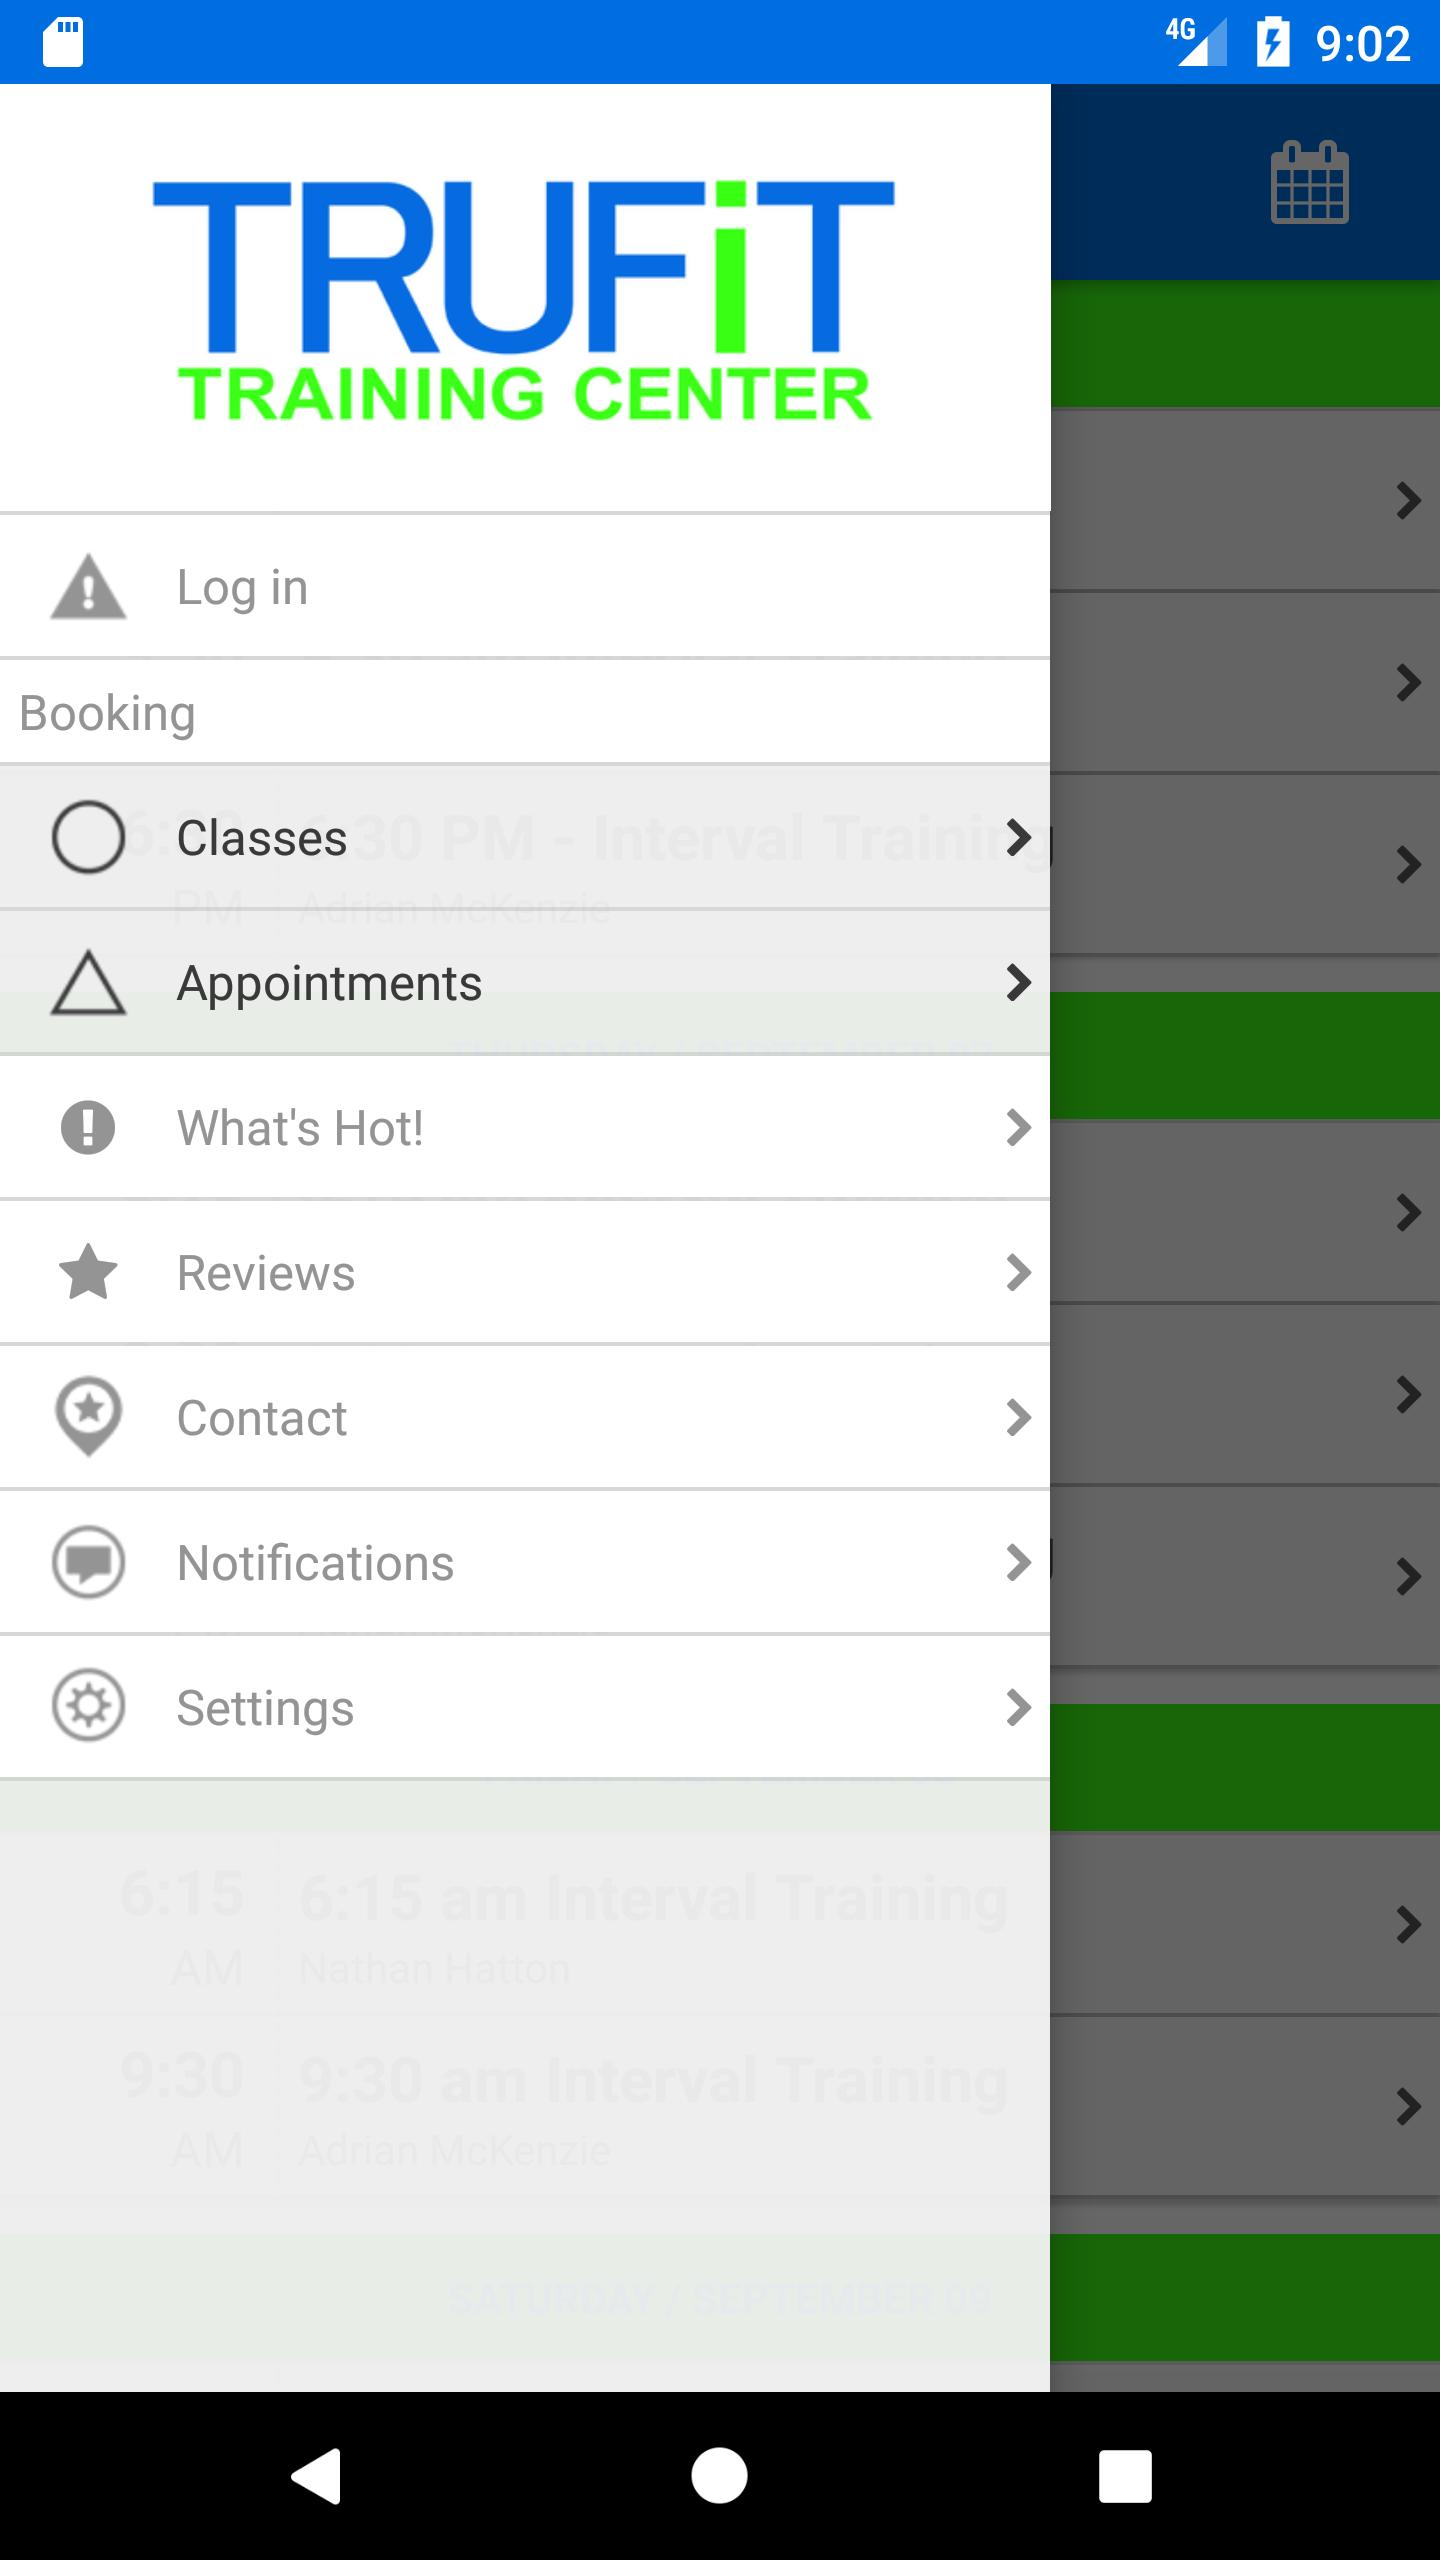 TRUFiT Training Center for Android - APK Download